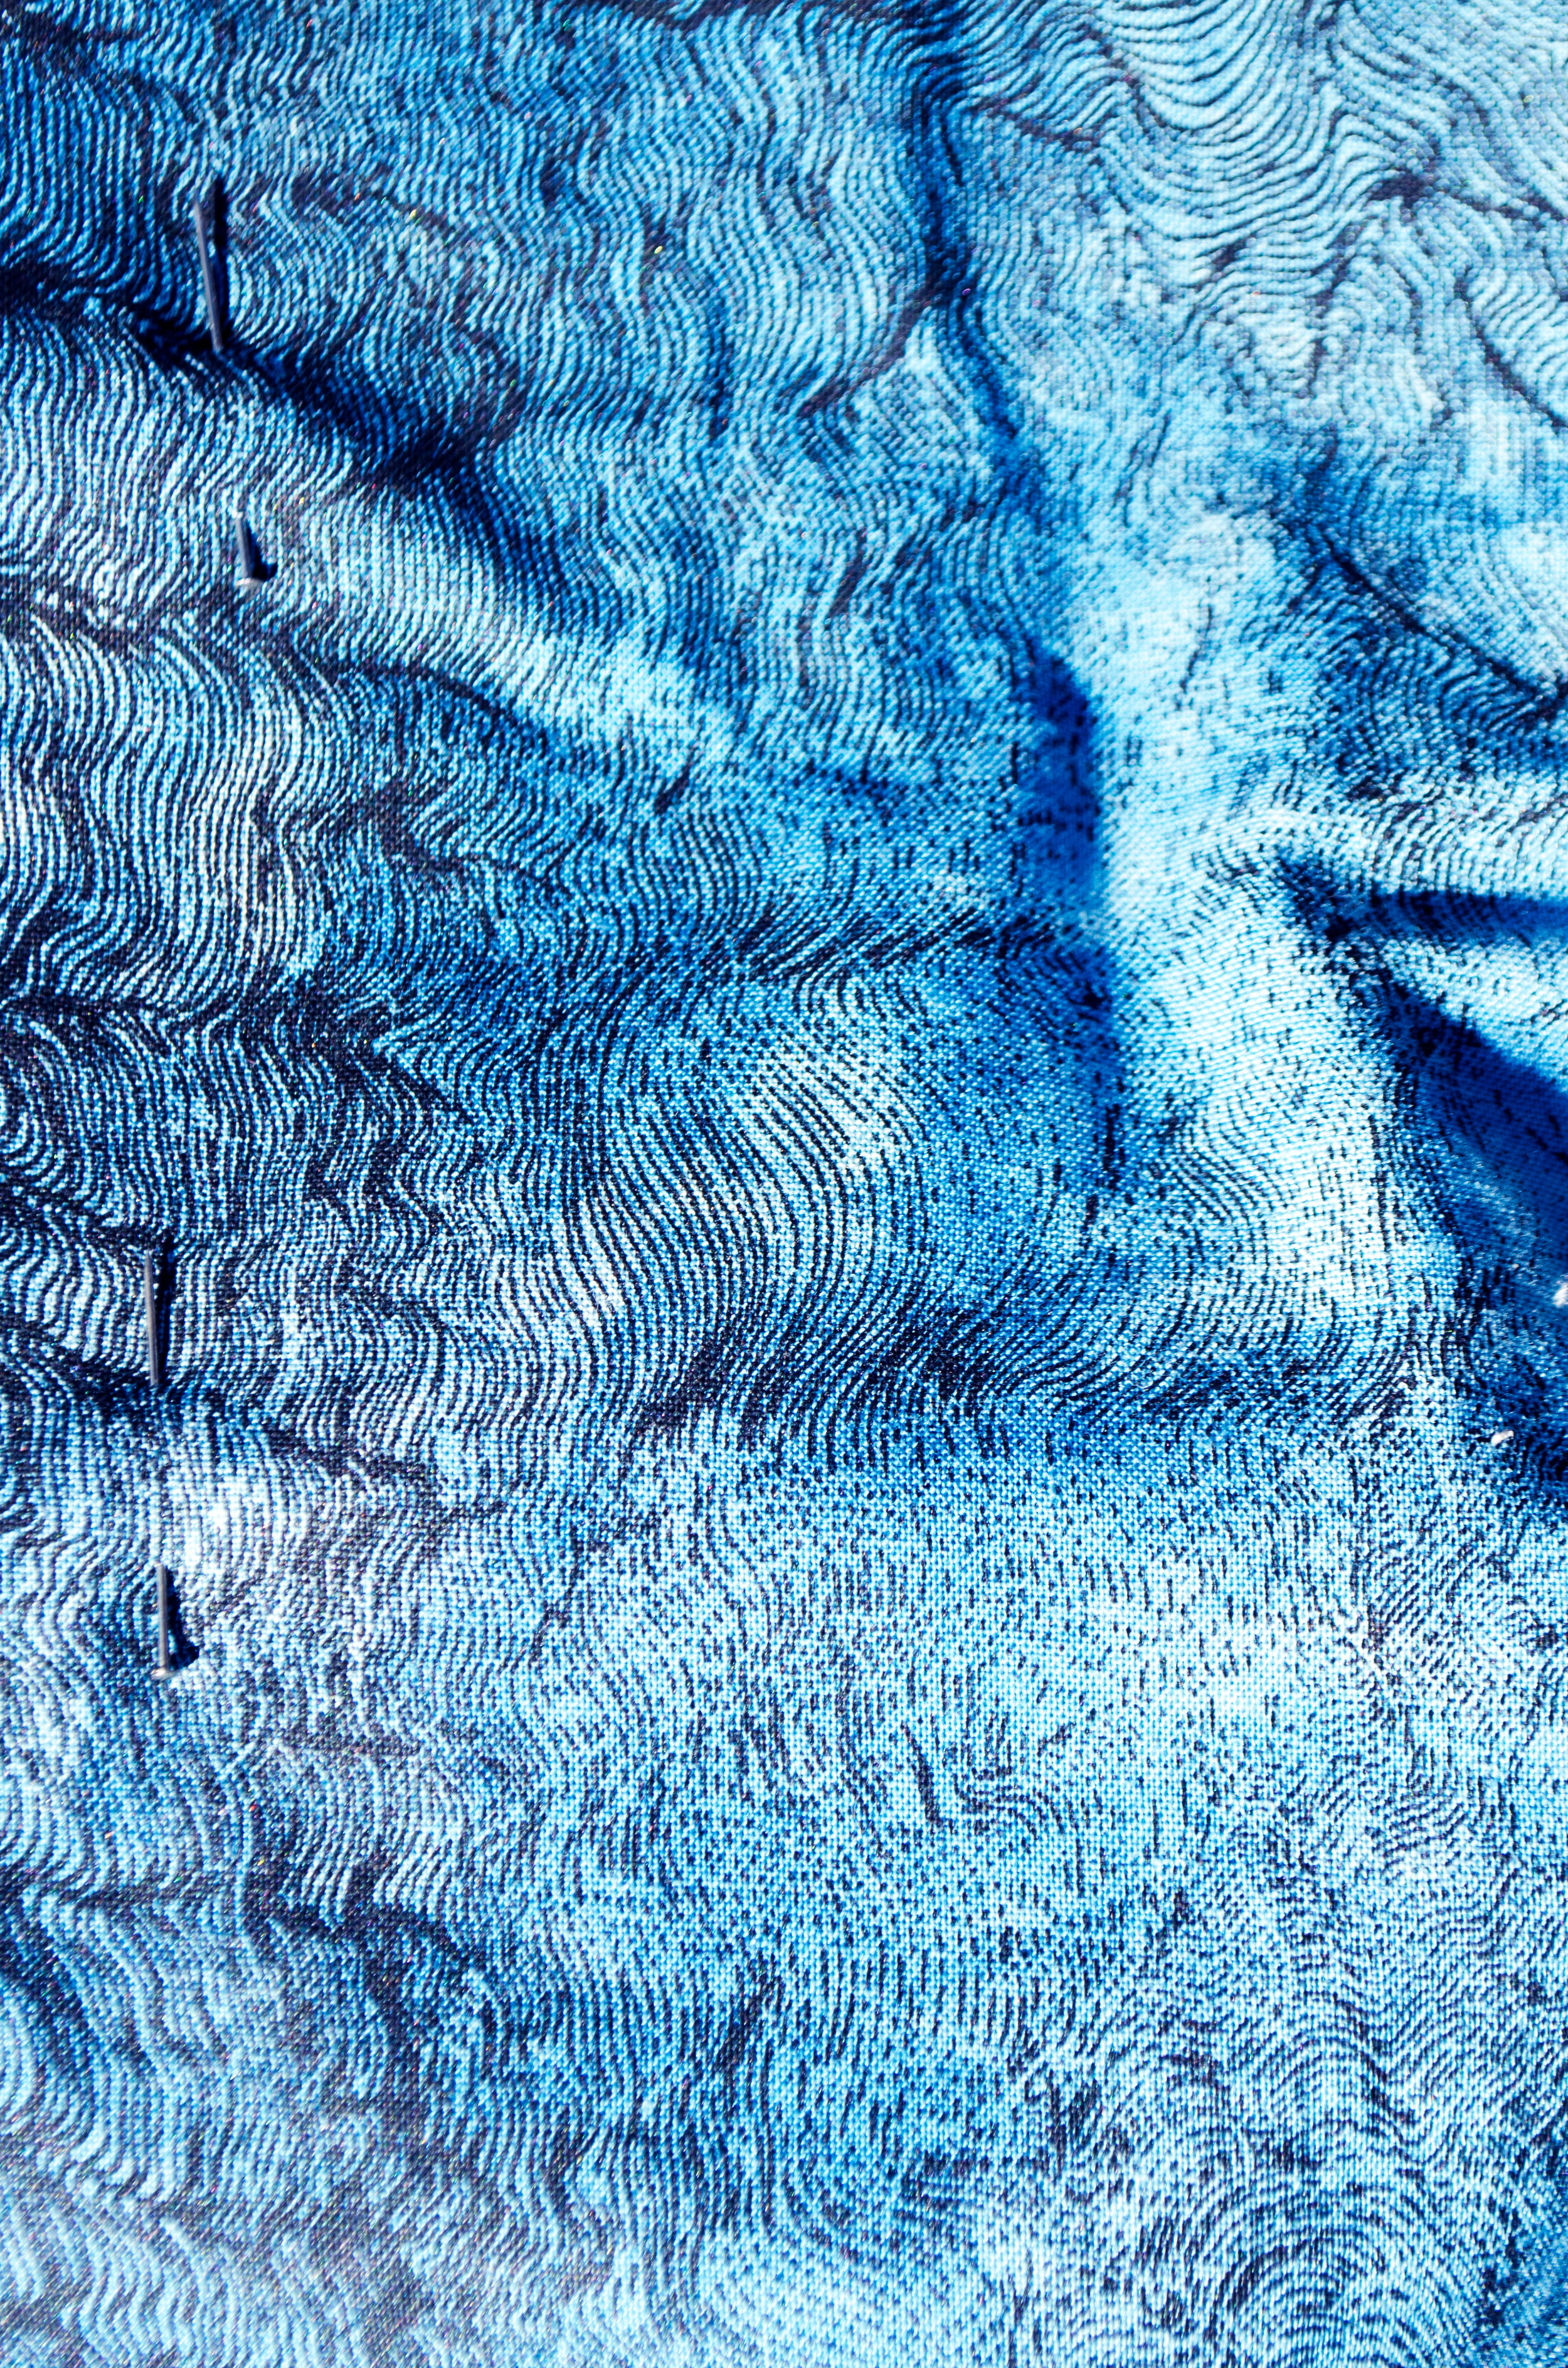 Screen printed cotton overdyed in the indigo vat